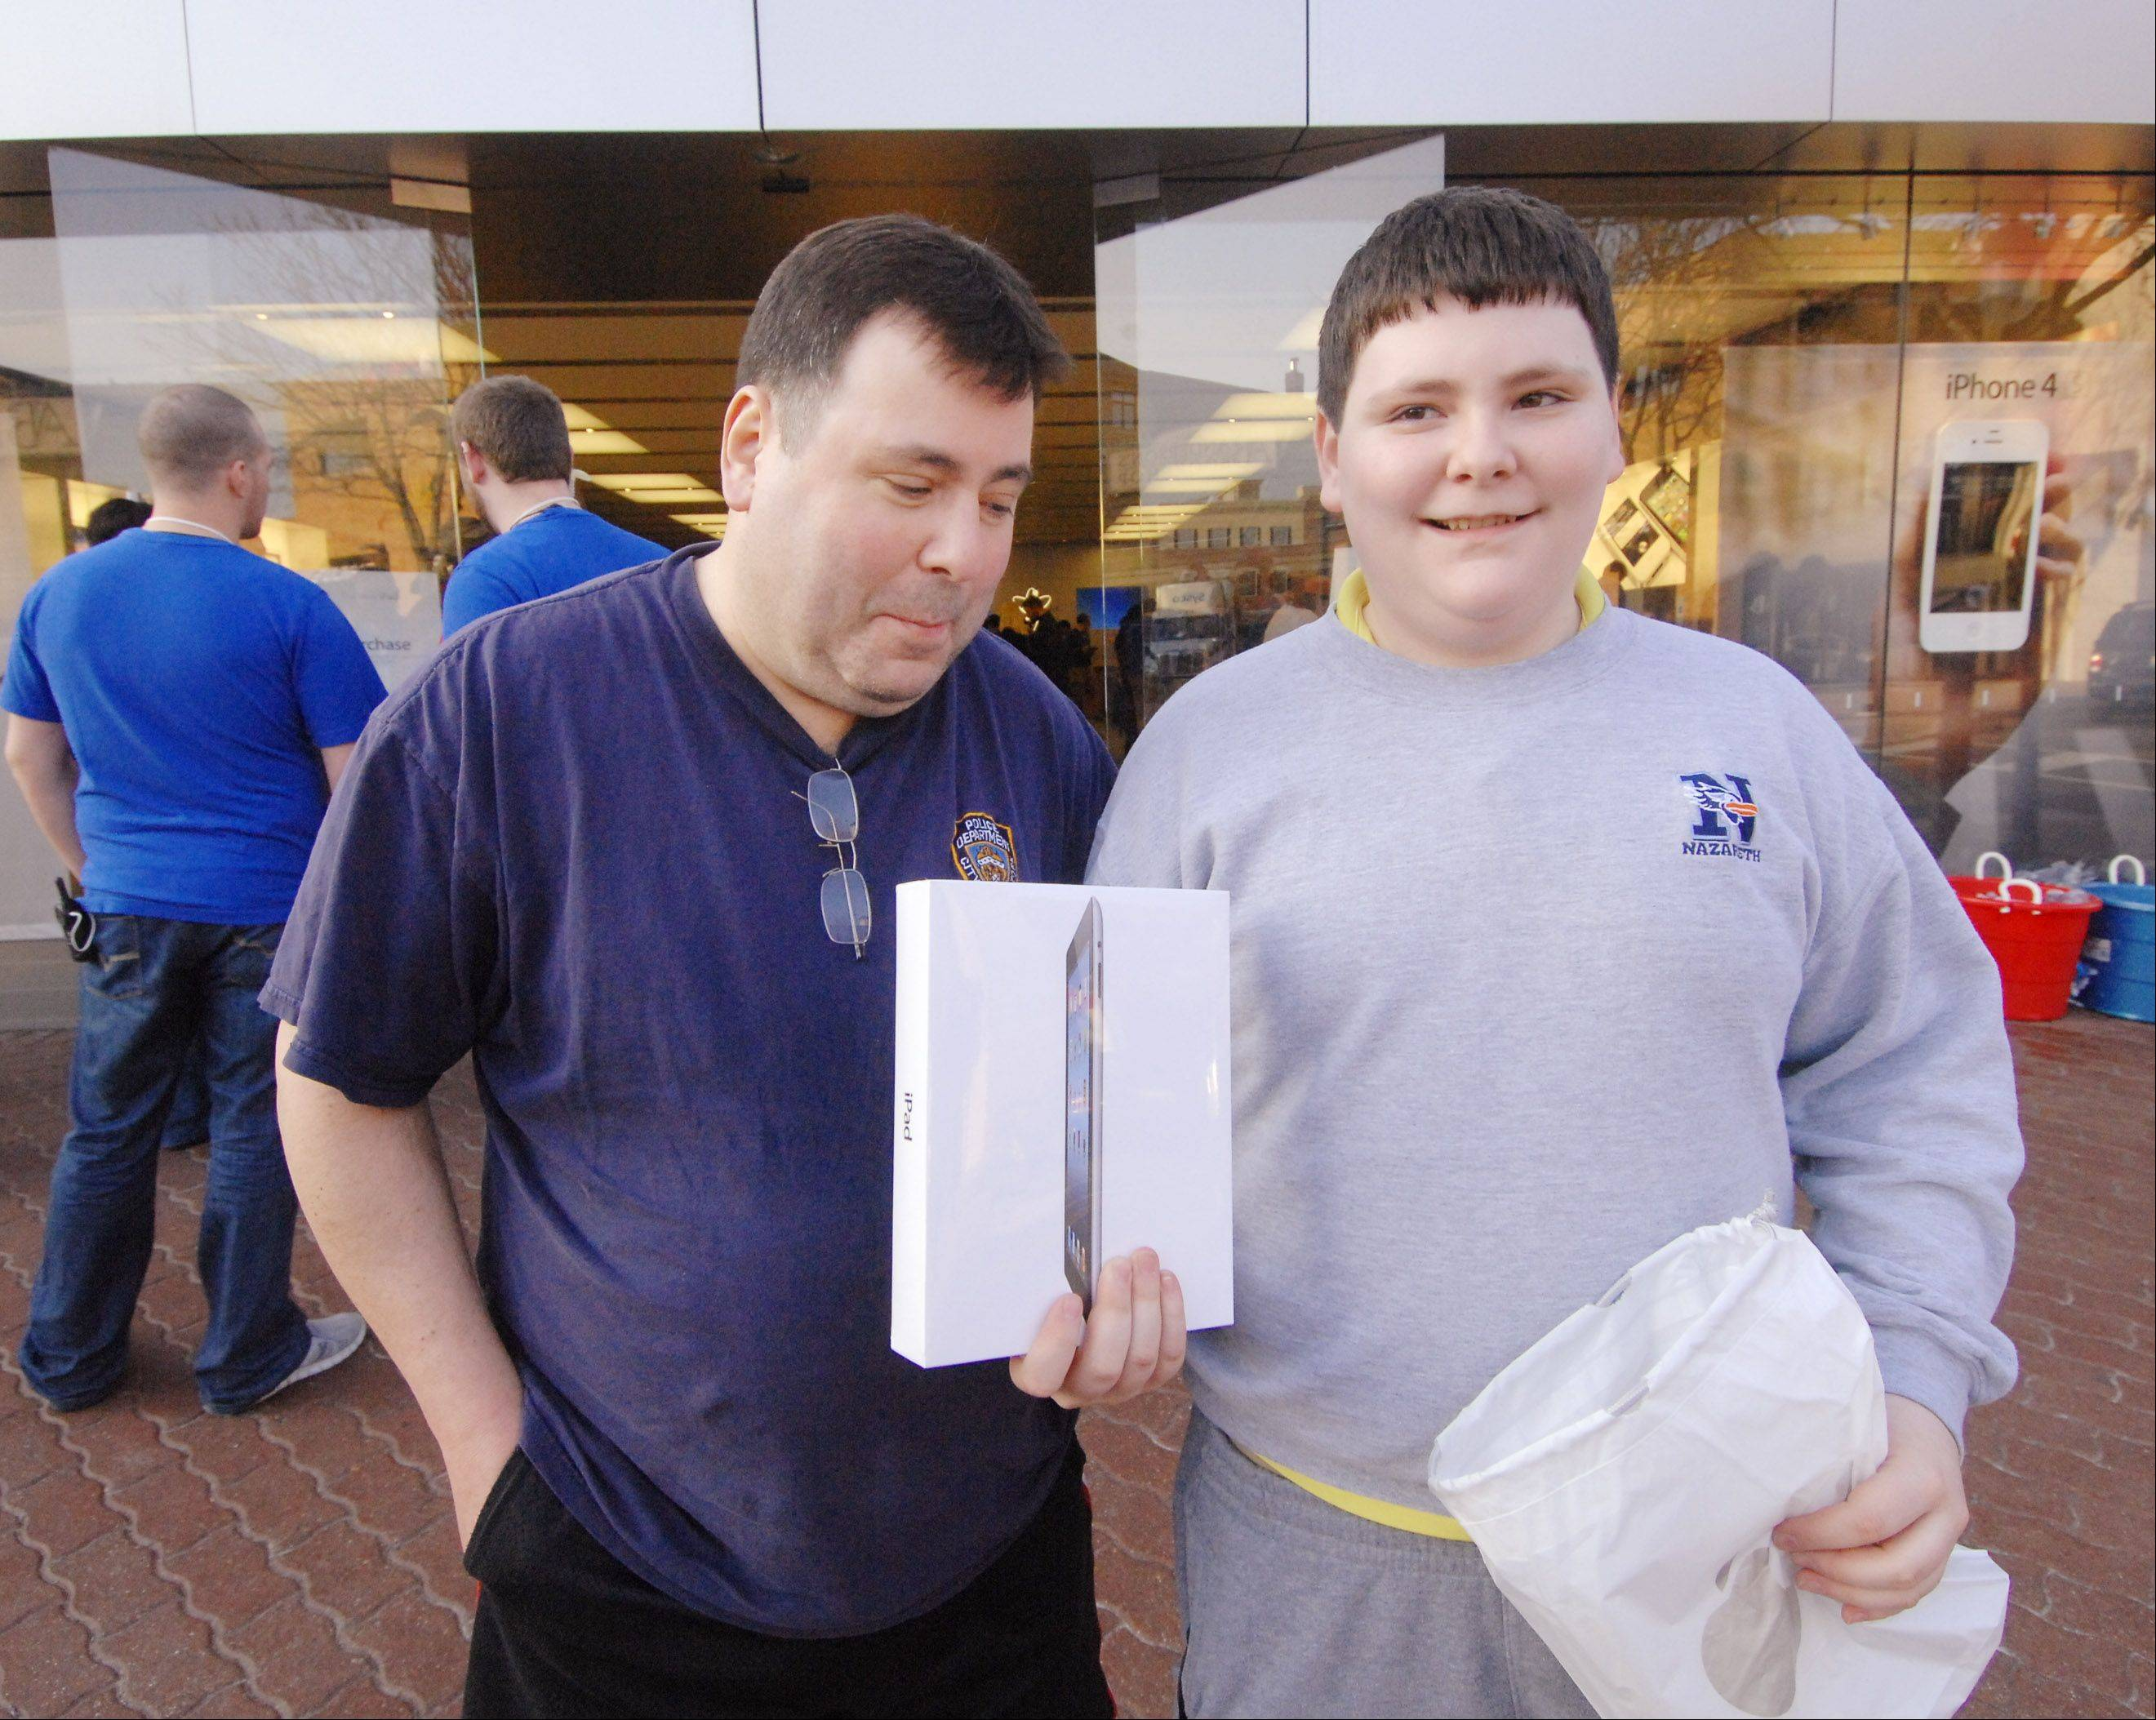 Matthew Henick, 14, emerges from the Apple store in Naperville with his new iPad after waiting overnight in line. His dad, Artie, sat in their car nearby all night.